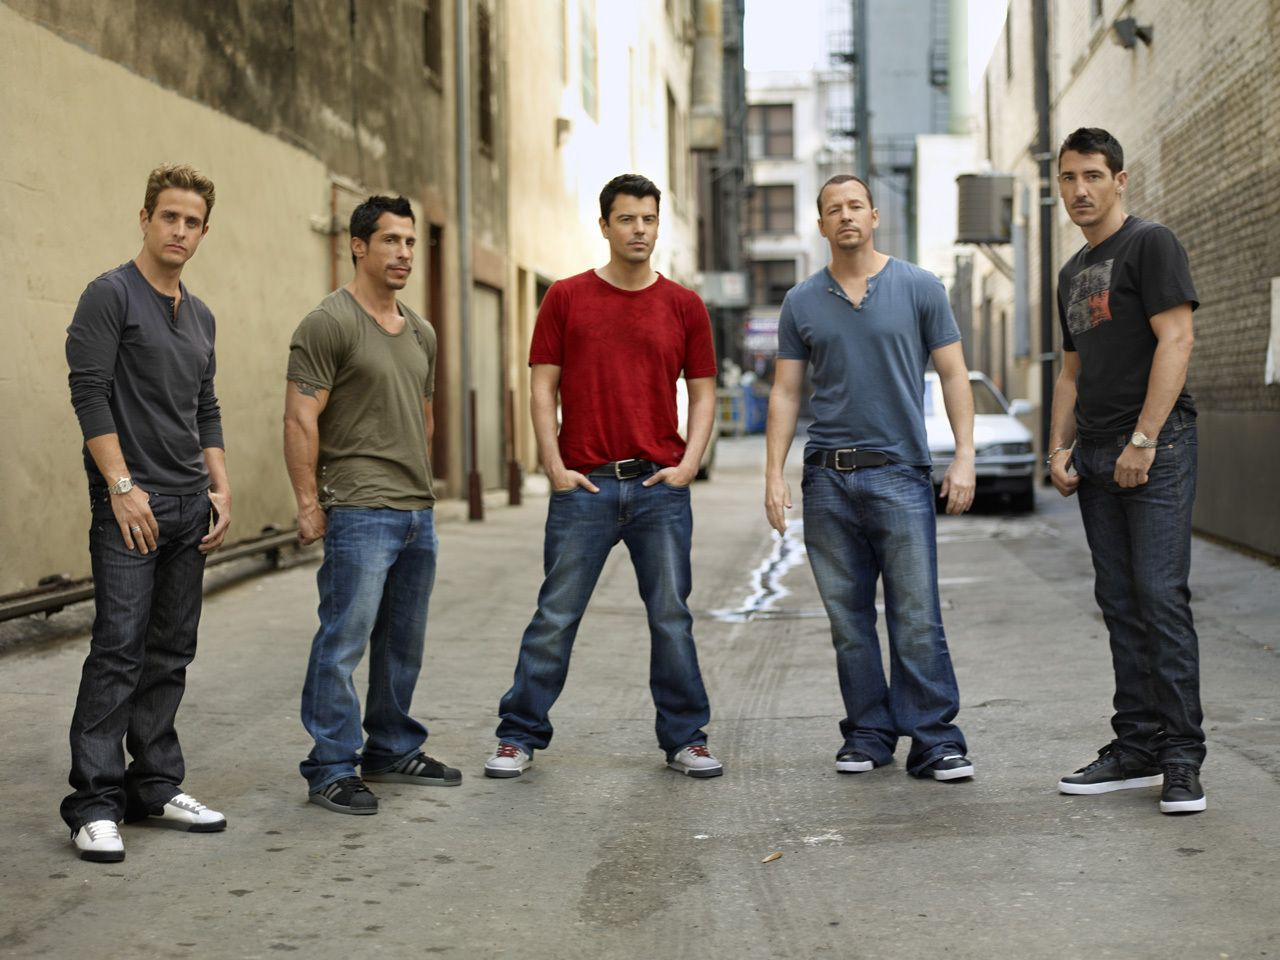 103 best New Kids on the Block images on Pinterest   Jordan knight, Joey mcintyre and Donnie wahlberg